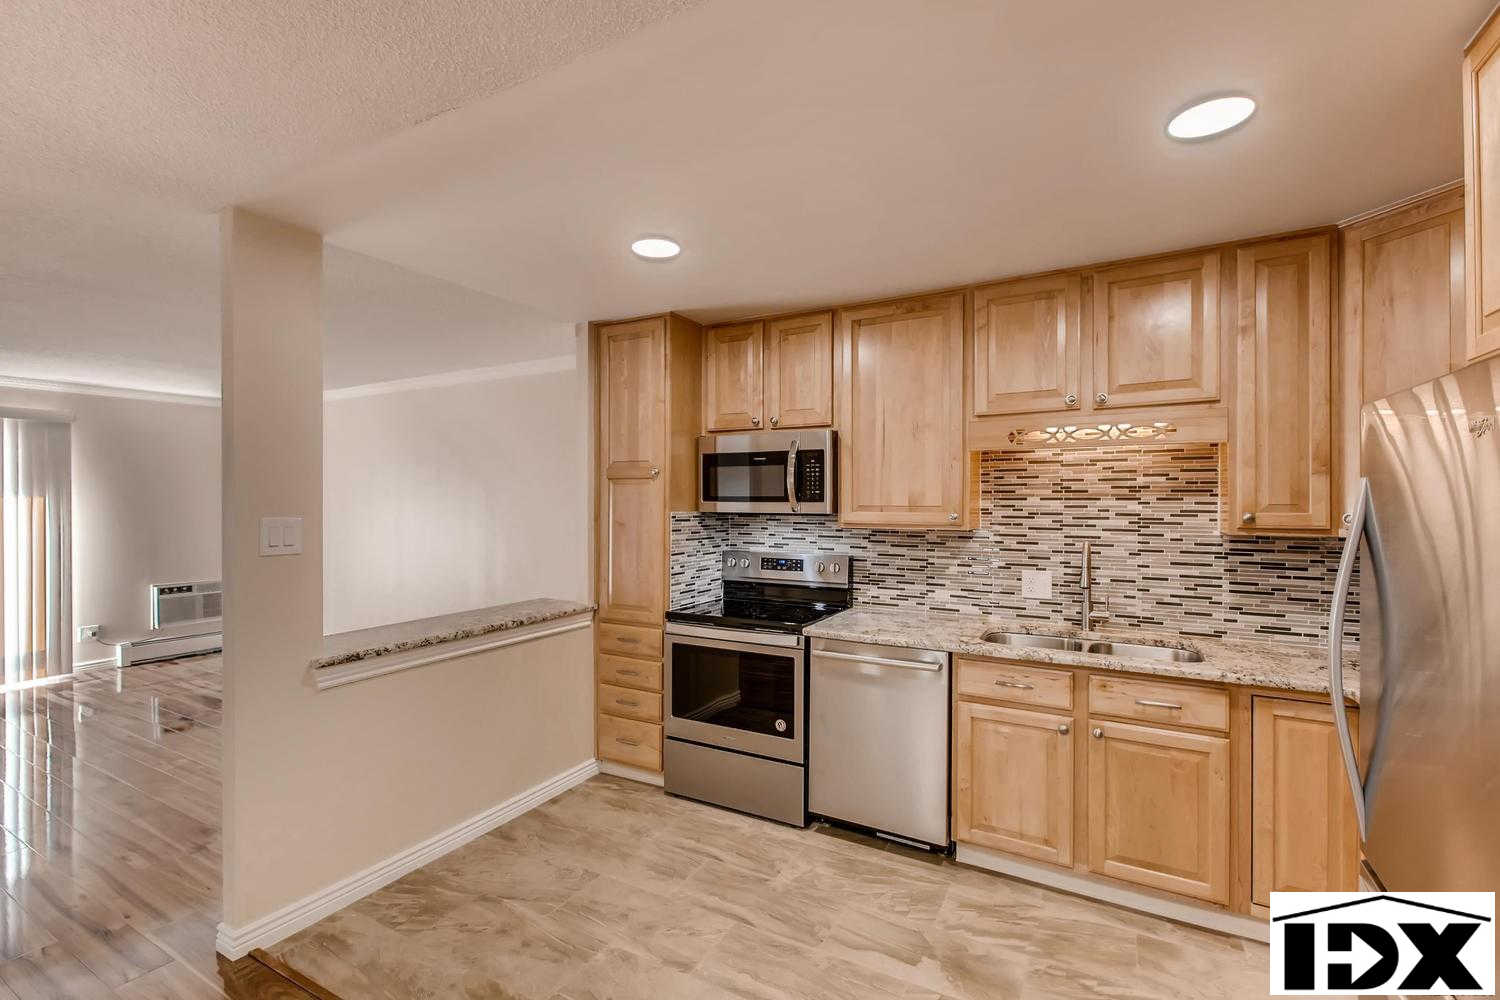 3082 South Wheeling Way #303, Aurora, CO 80014 now has a new price of $239,900!